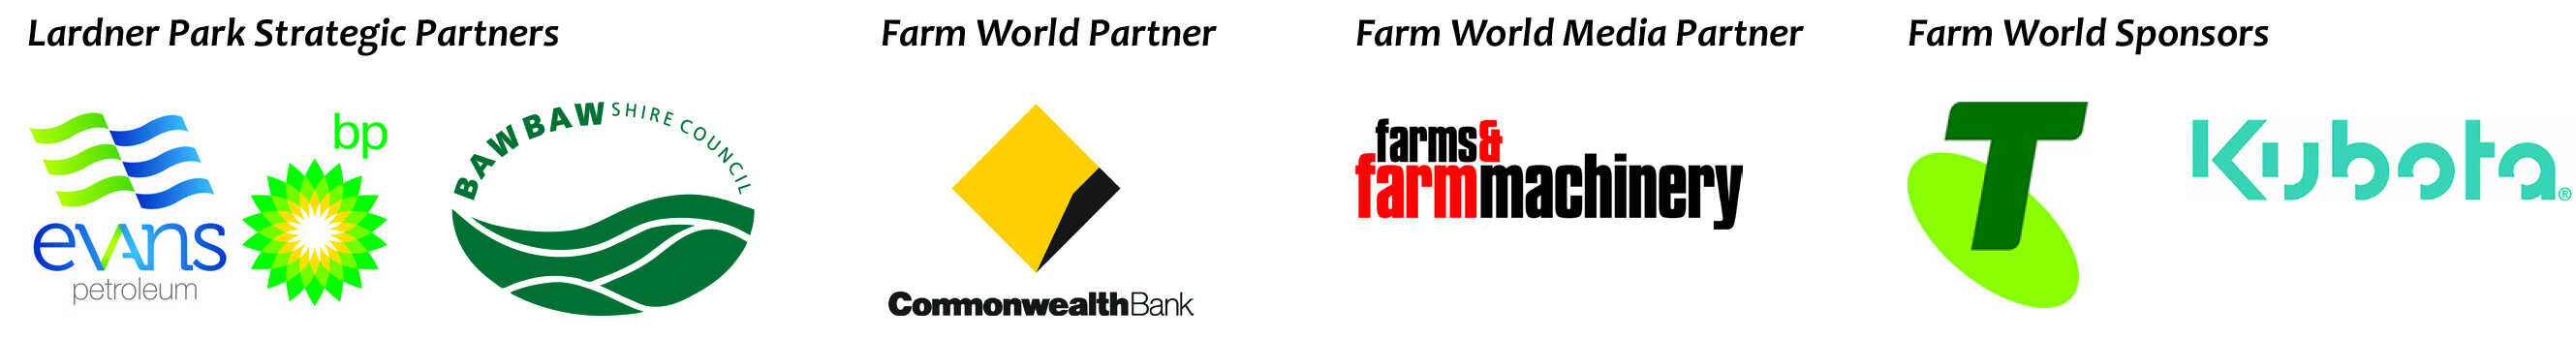 Farm World 2020 sponsor logos